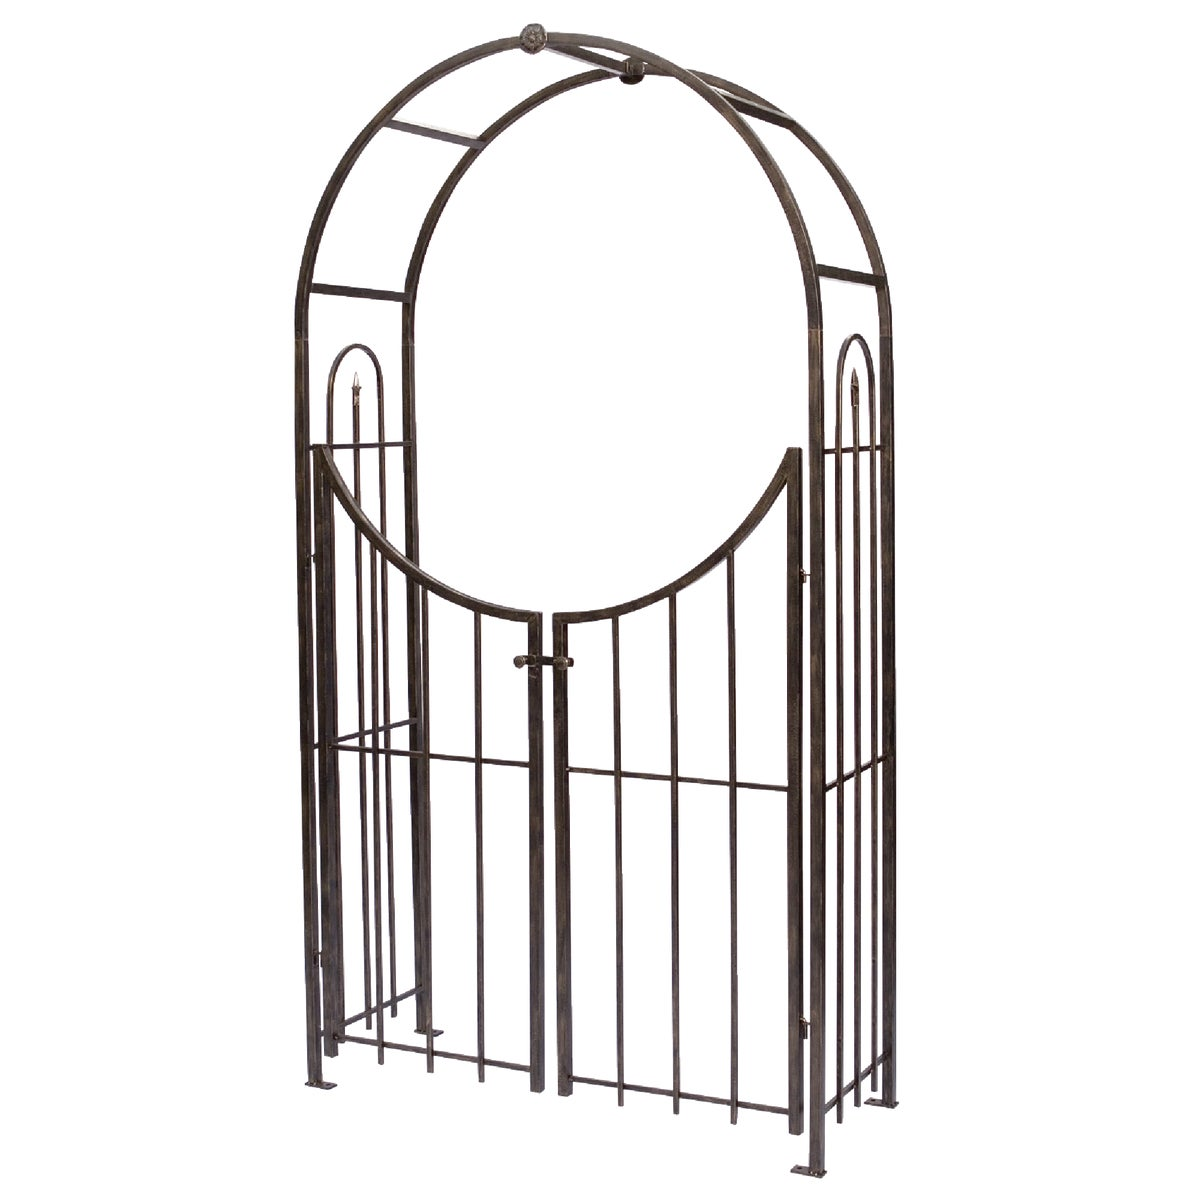 BRONZE GARDEN ARBOR - 89096 by Panacea Products